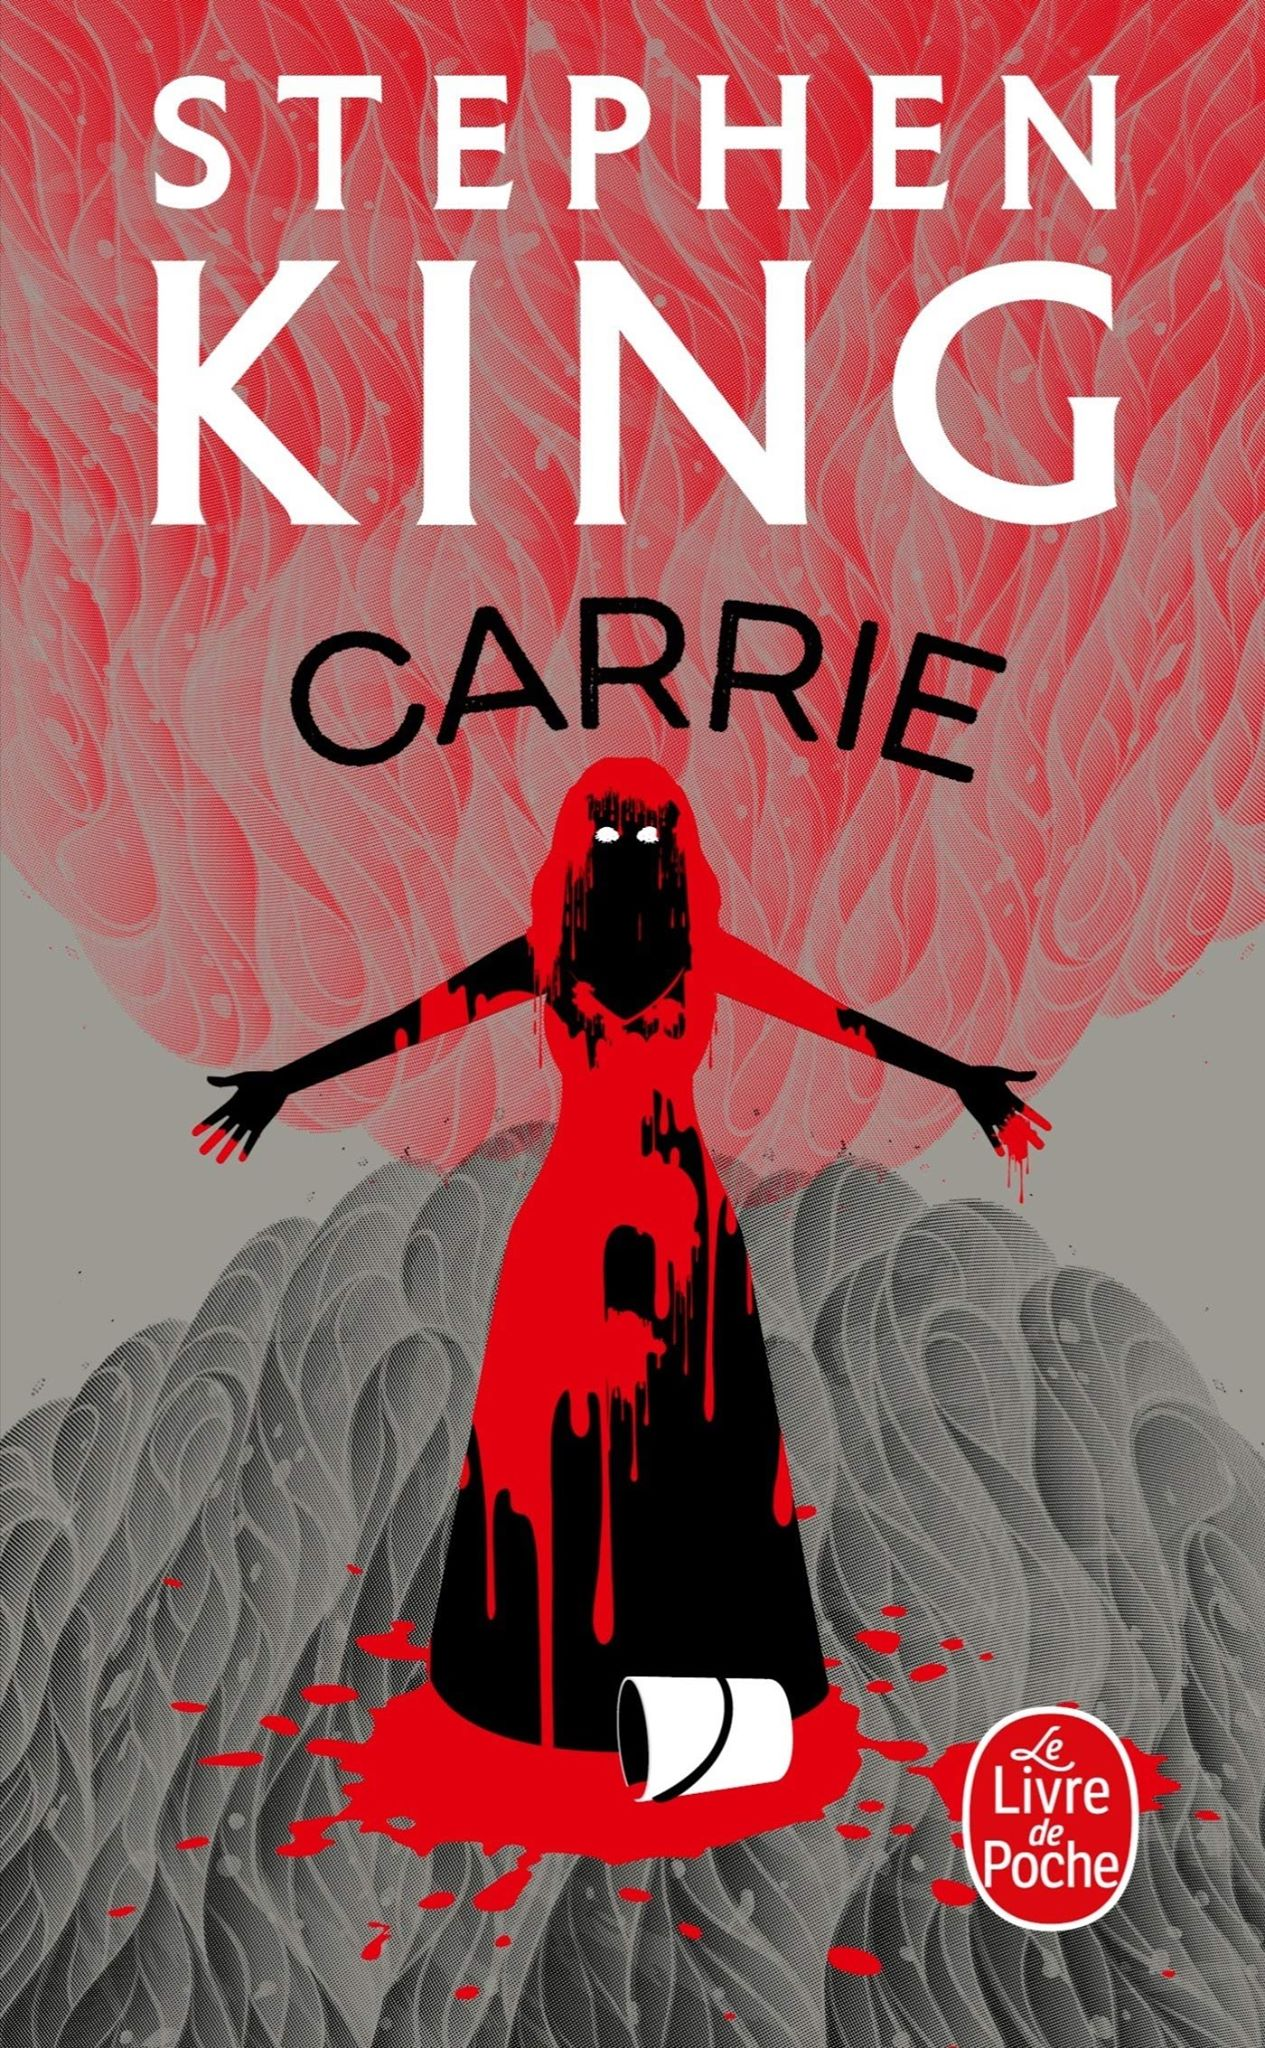 Stephenking Lelivredepoche Reedition 2020 Carrie